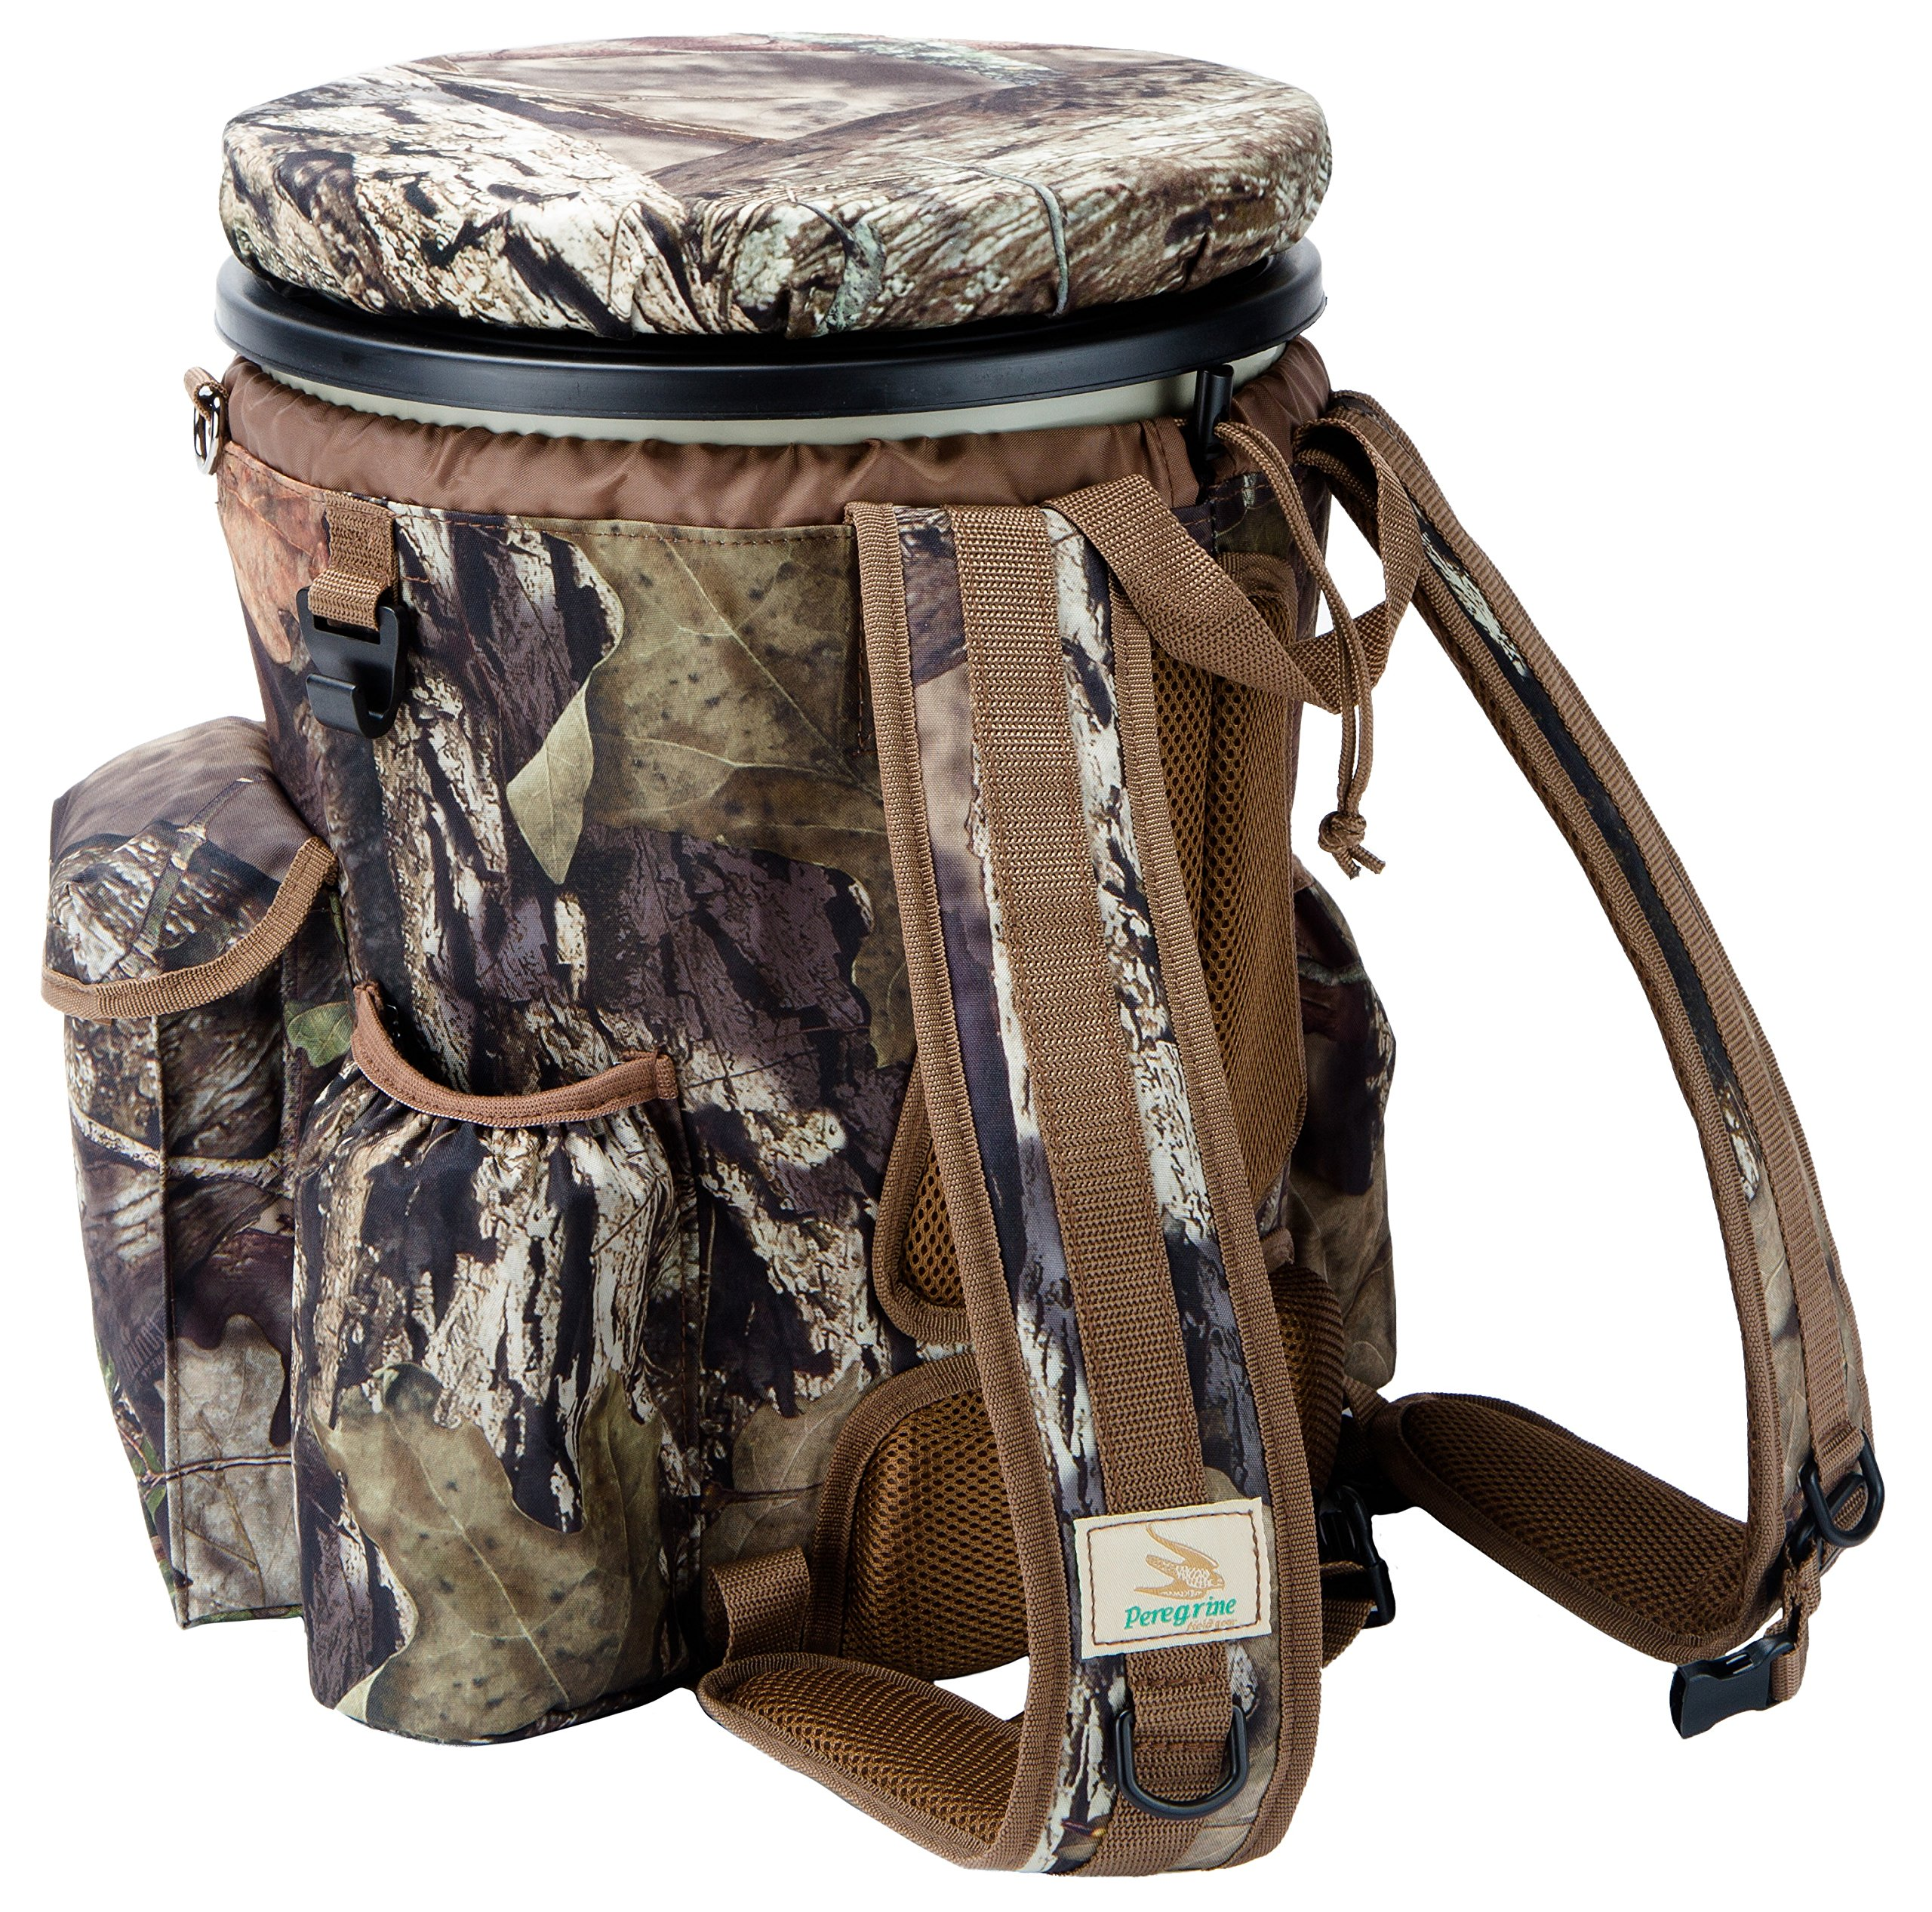 Peregrine Venture Bucket Pack Field Gear Venture Bucket Pack in Break-Up Country, 5 gallon by Peregrine (Image #3)